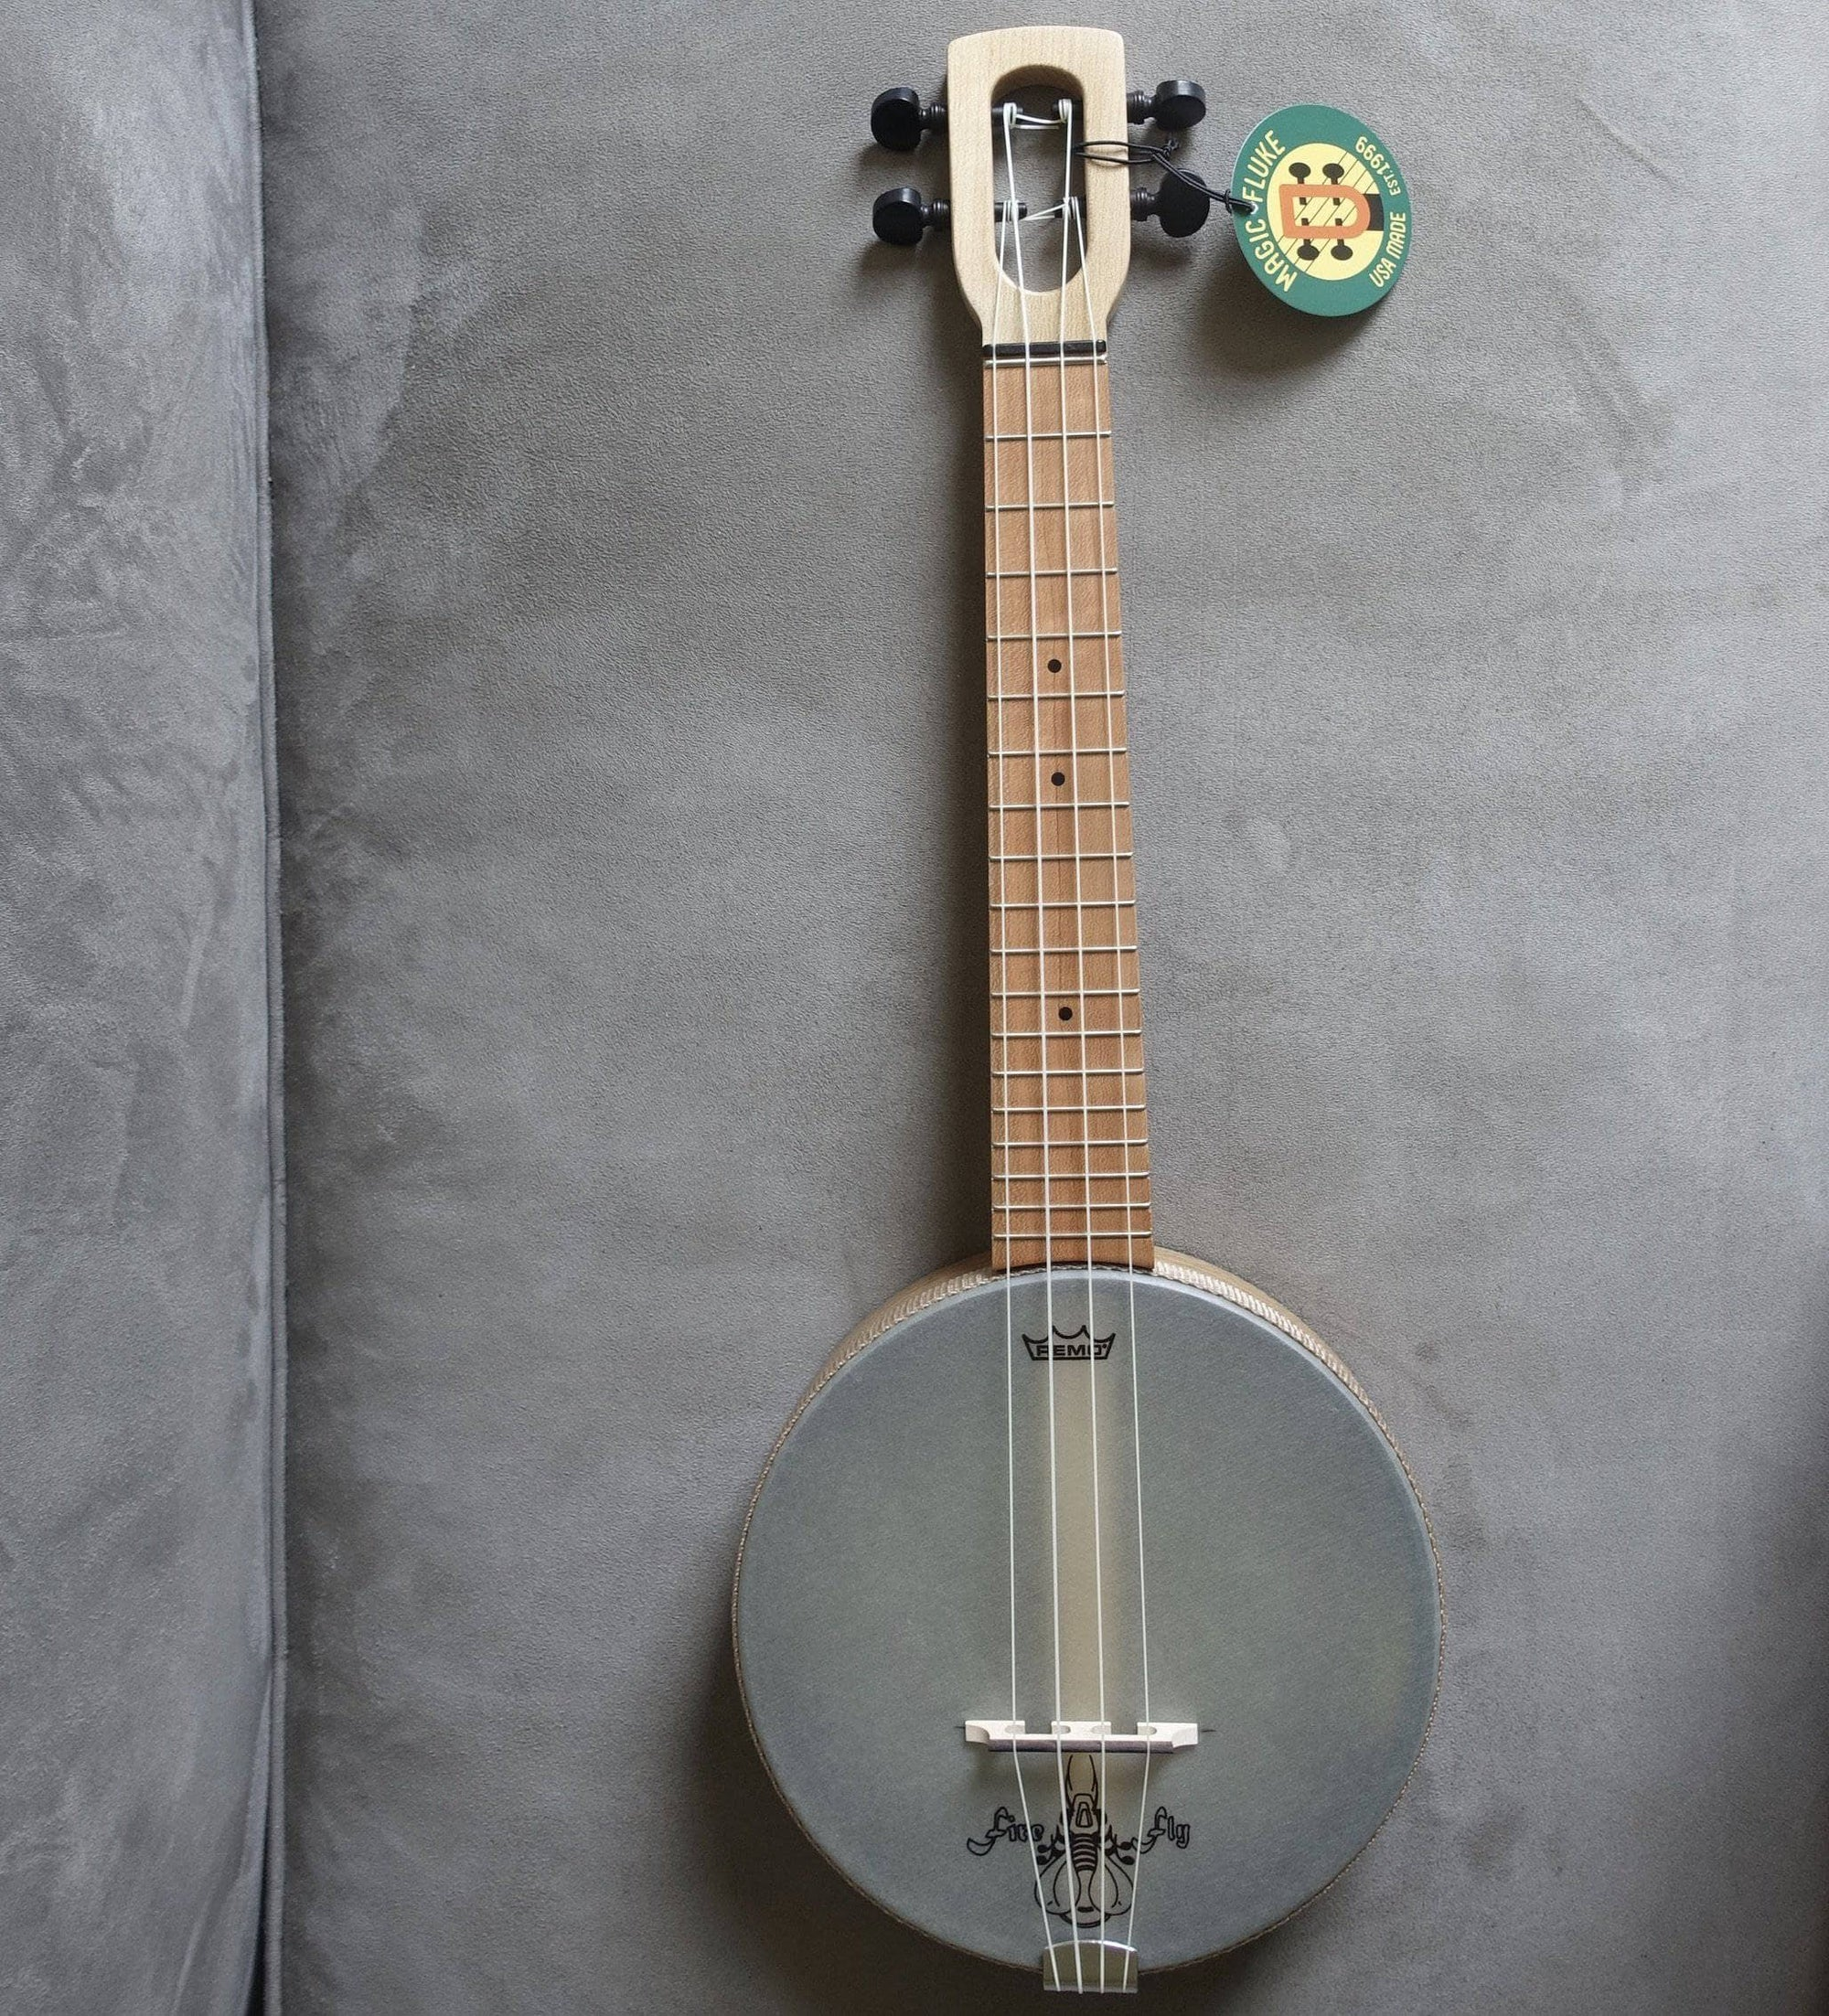 Concert Firefly Banjo Ukulele M90 with Geared Tuners